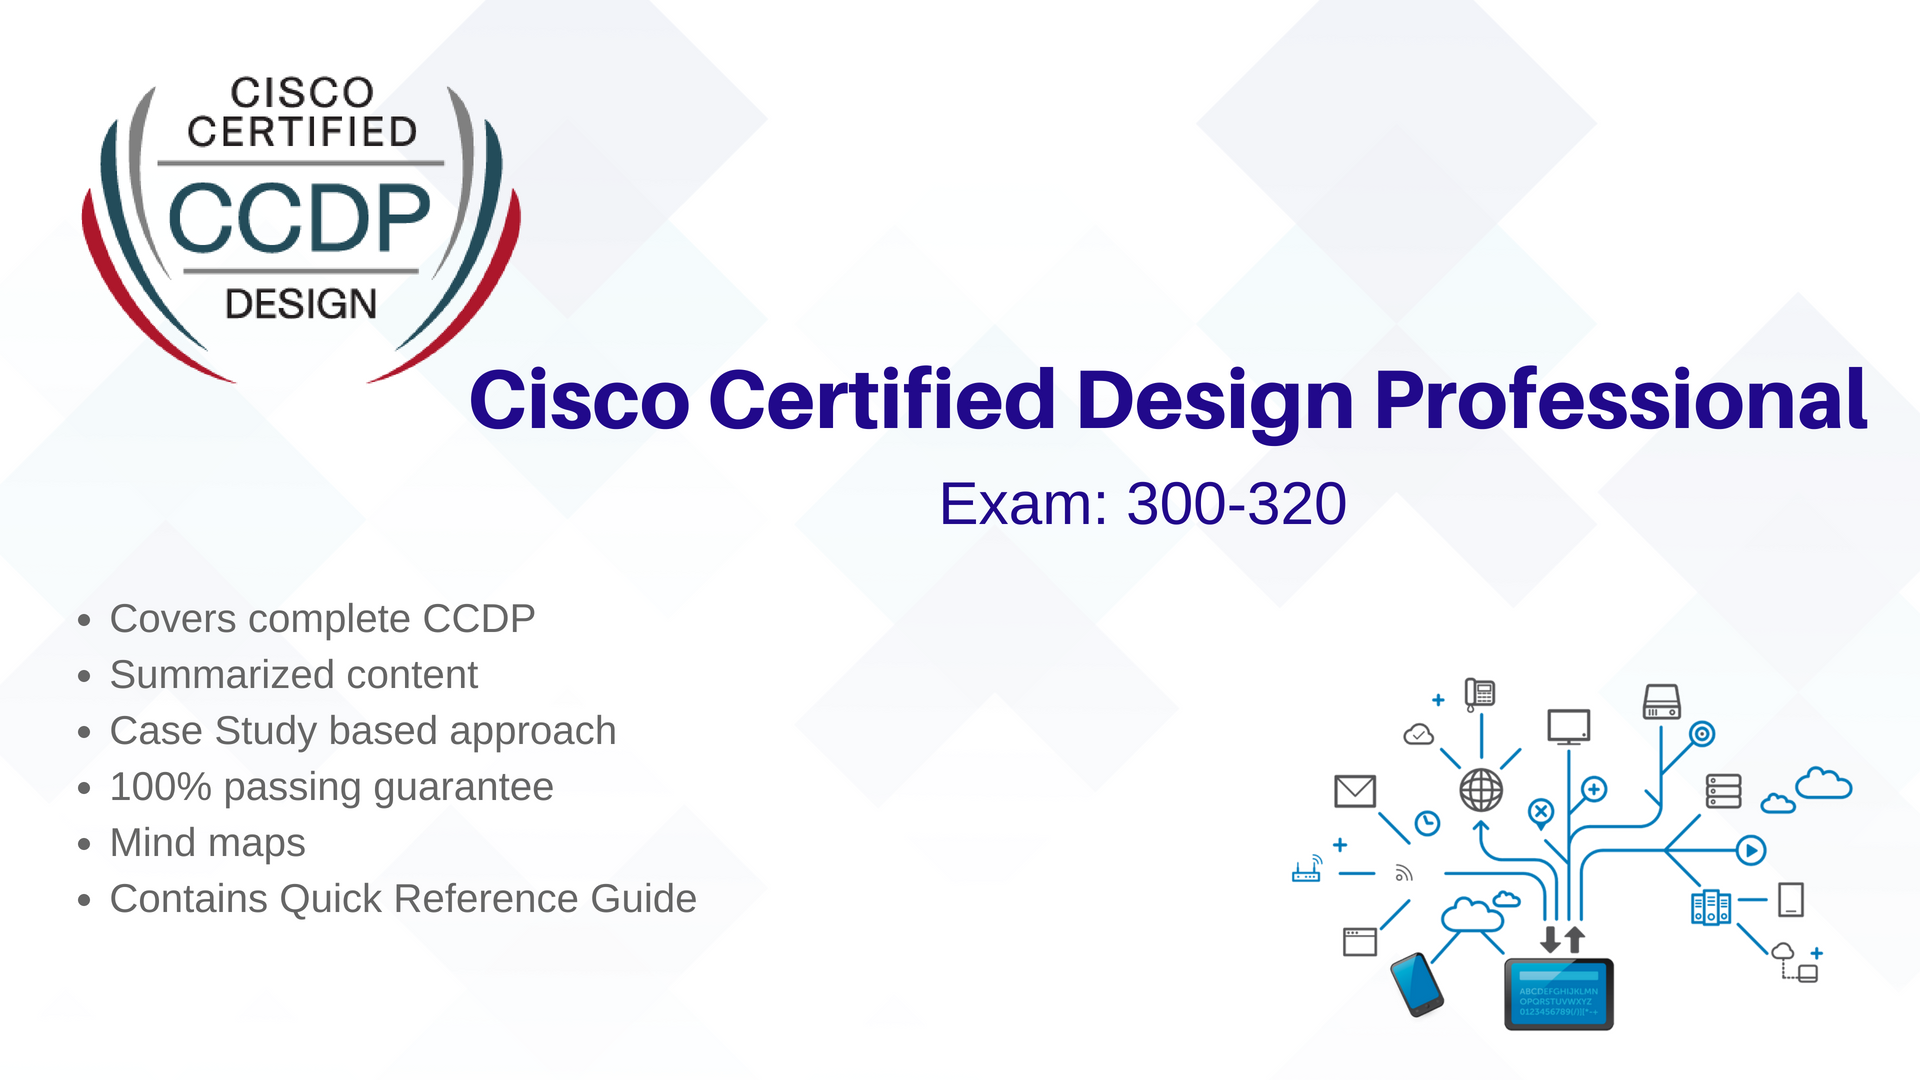 Cisco Certified Design Professional (CCDP)